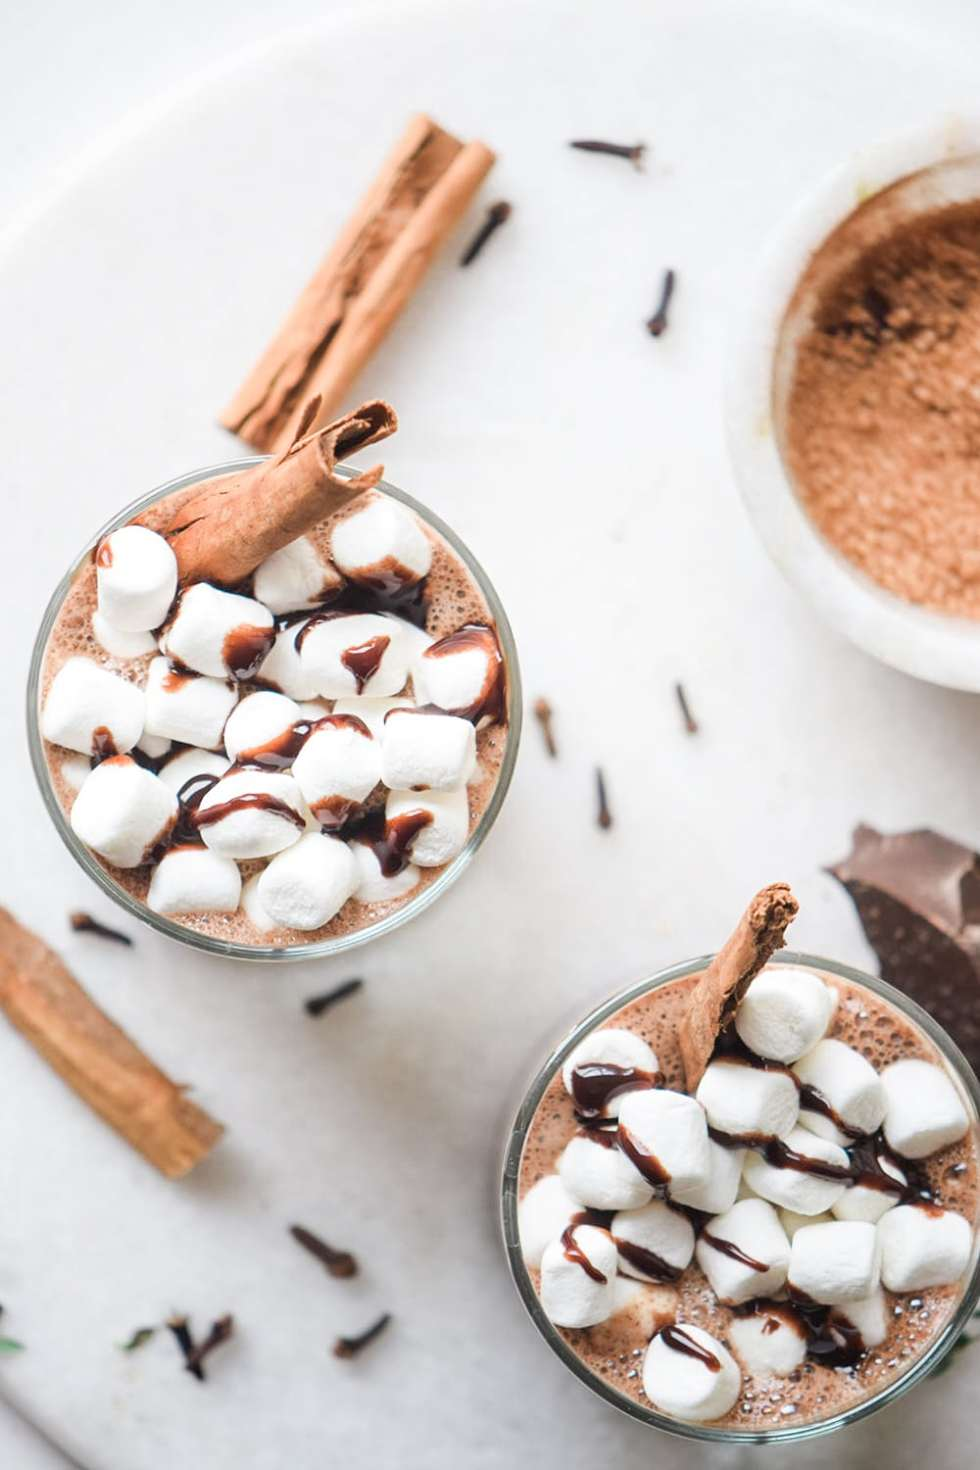 Crockpot Hot Chocolate with Chai Spices - perfect fall drink for the holidays to keep you warm and impress your family during the holiday season